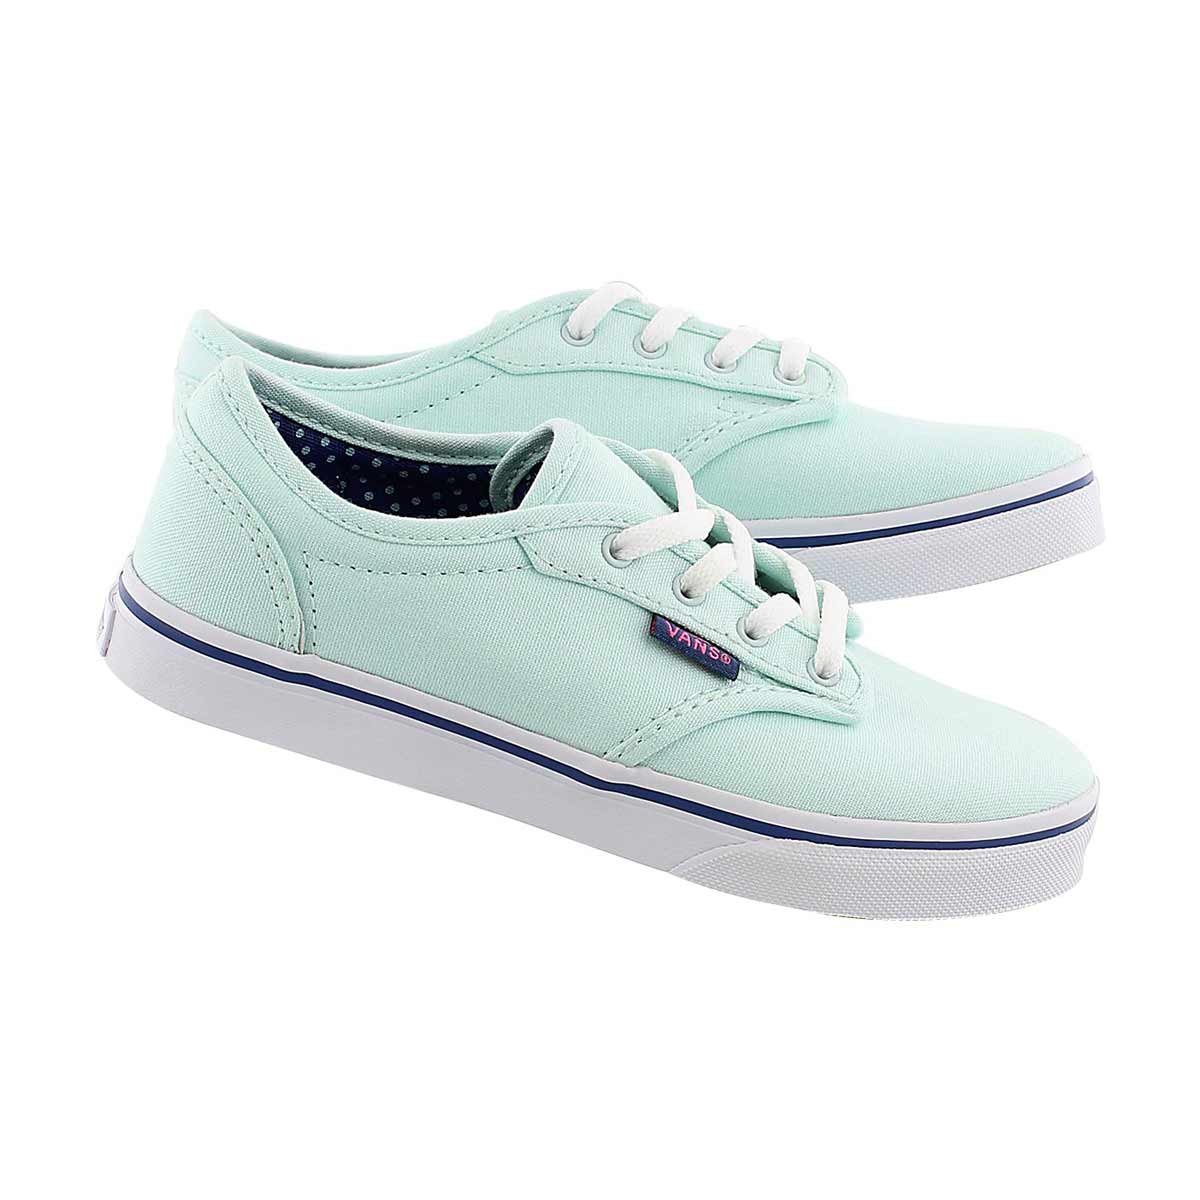 Grls Atwood Low sea grn lace up sneaker